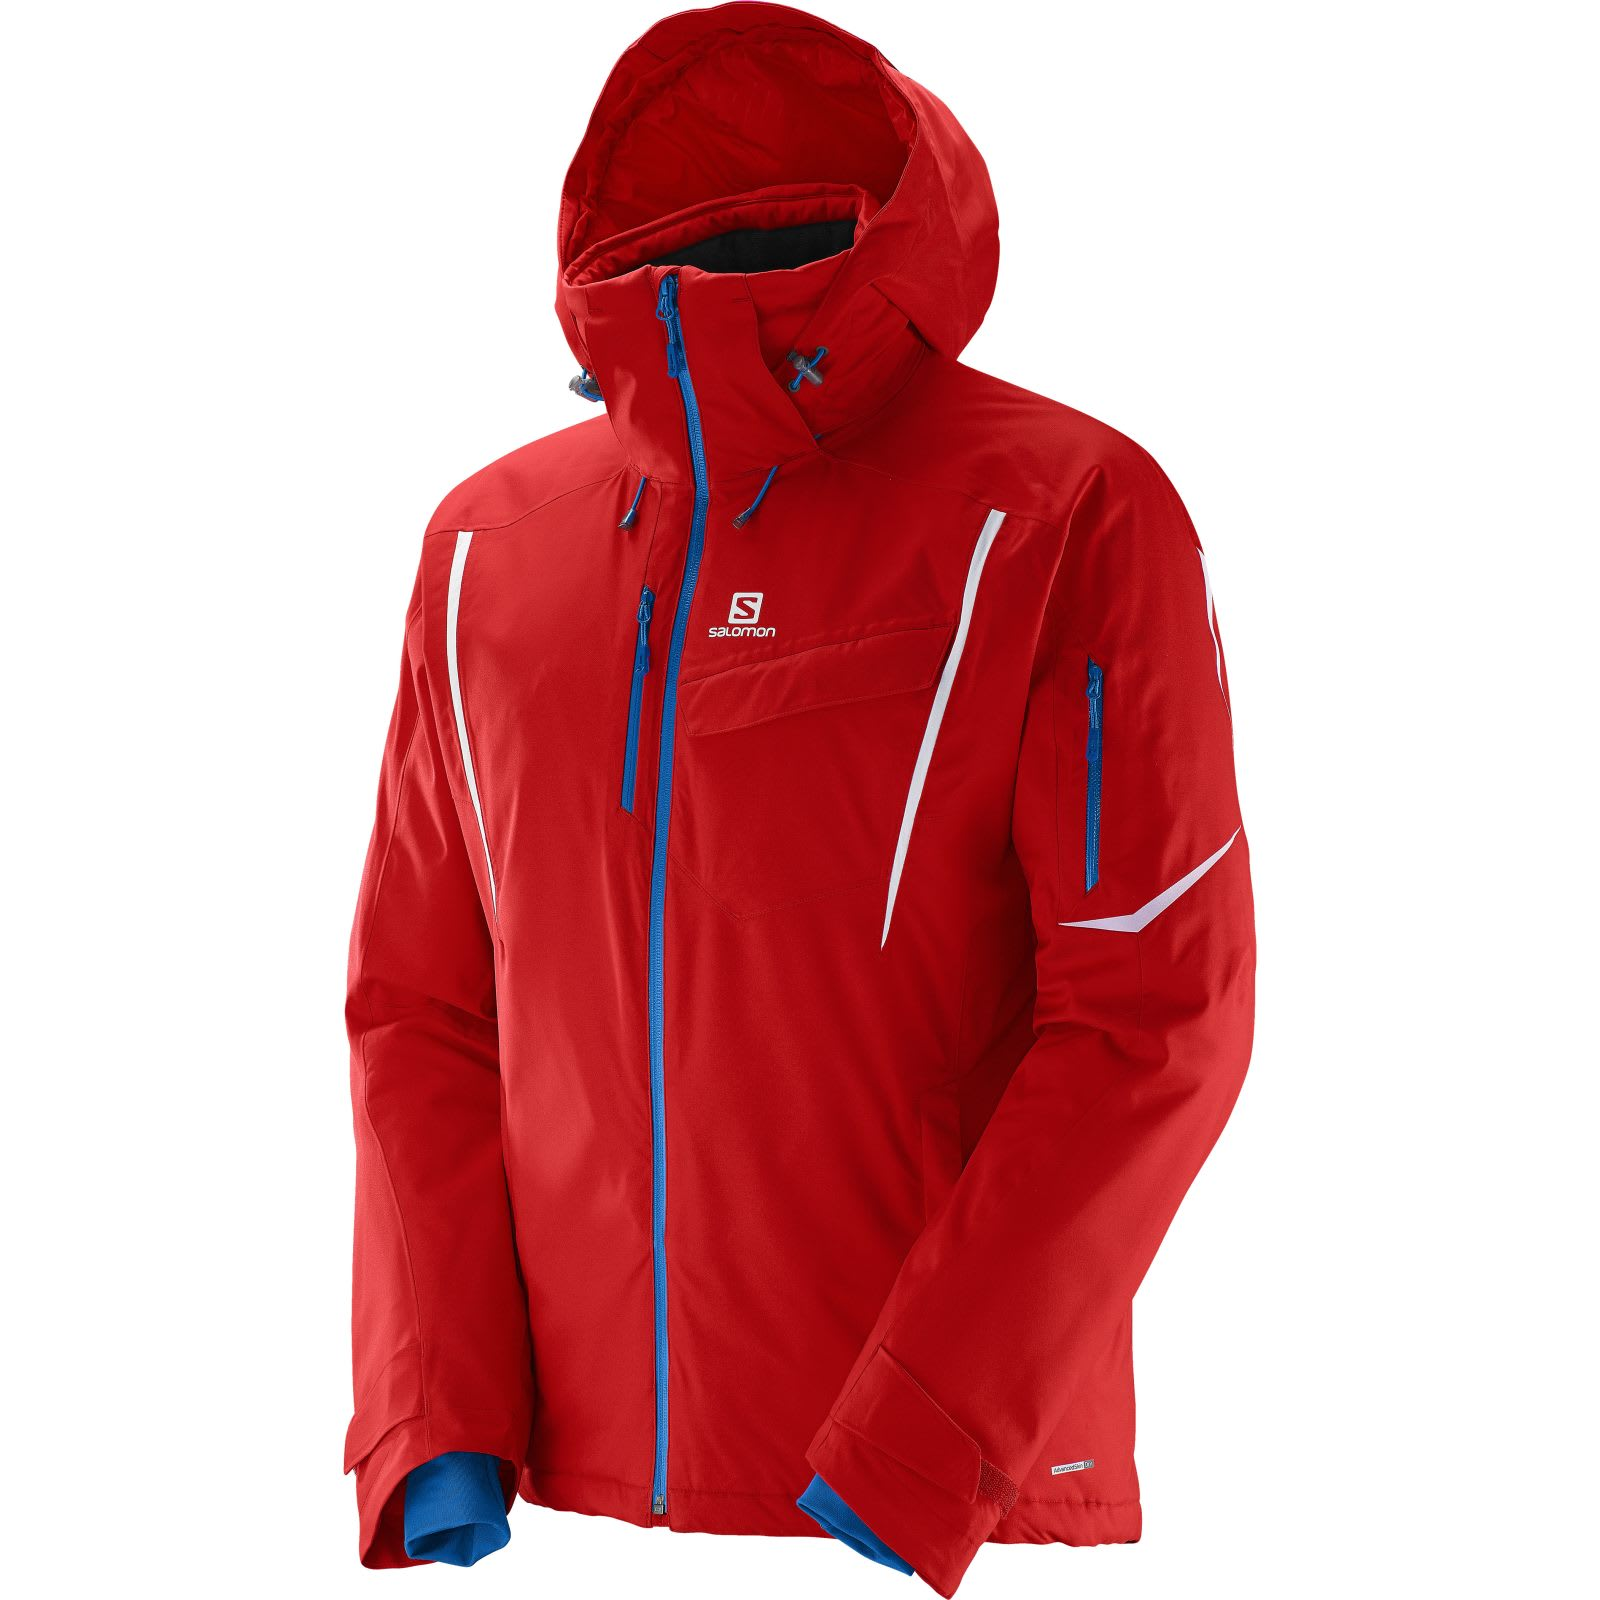 9f26f5075a35 Buy Salomon Enduro Jacket Men s from Outnorth